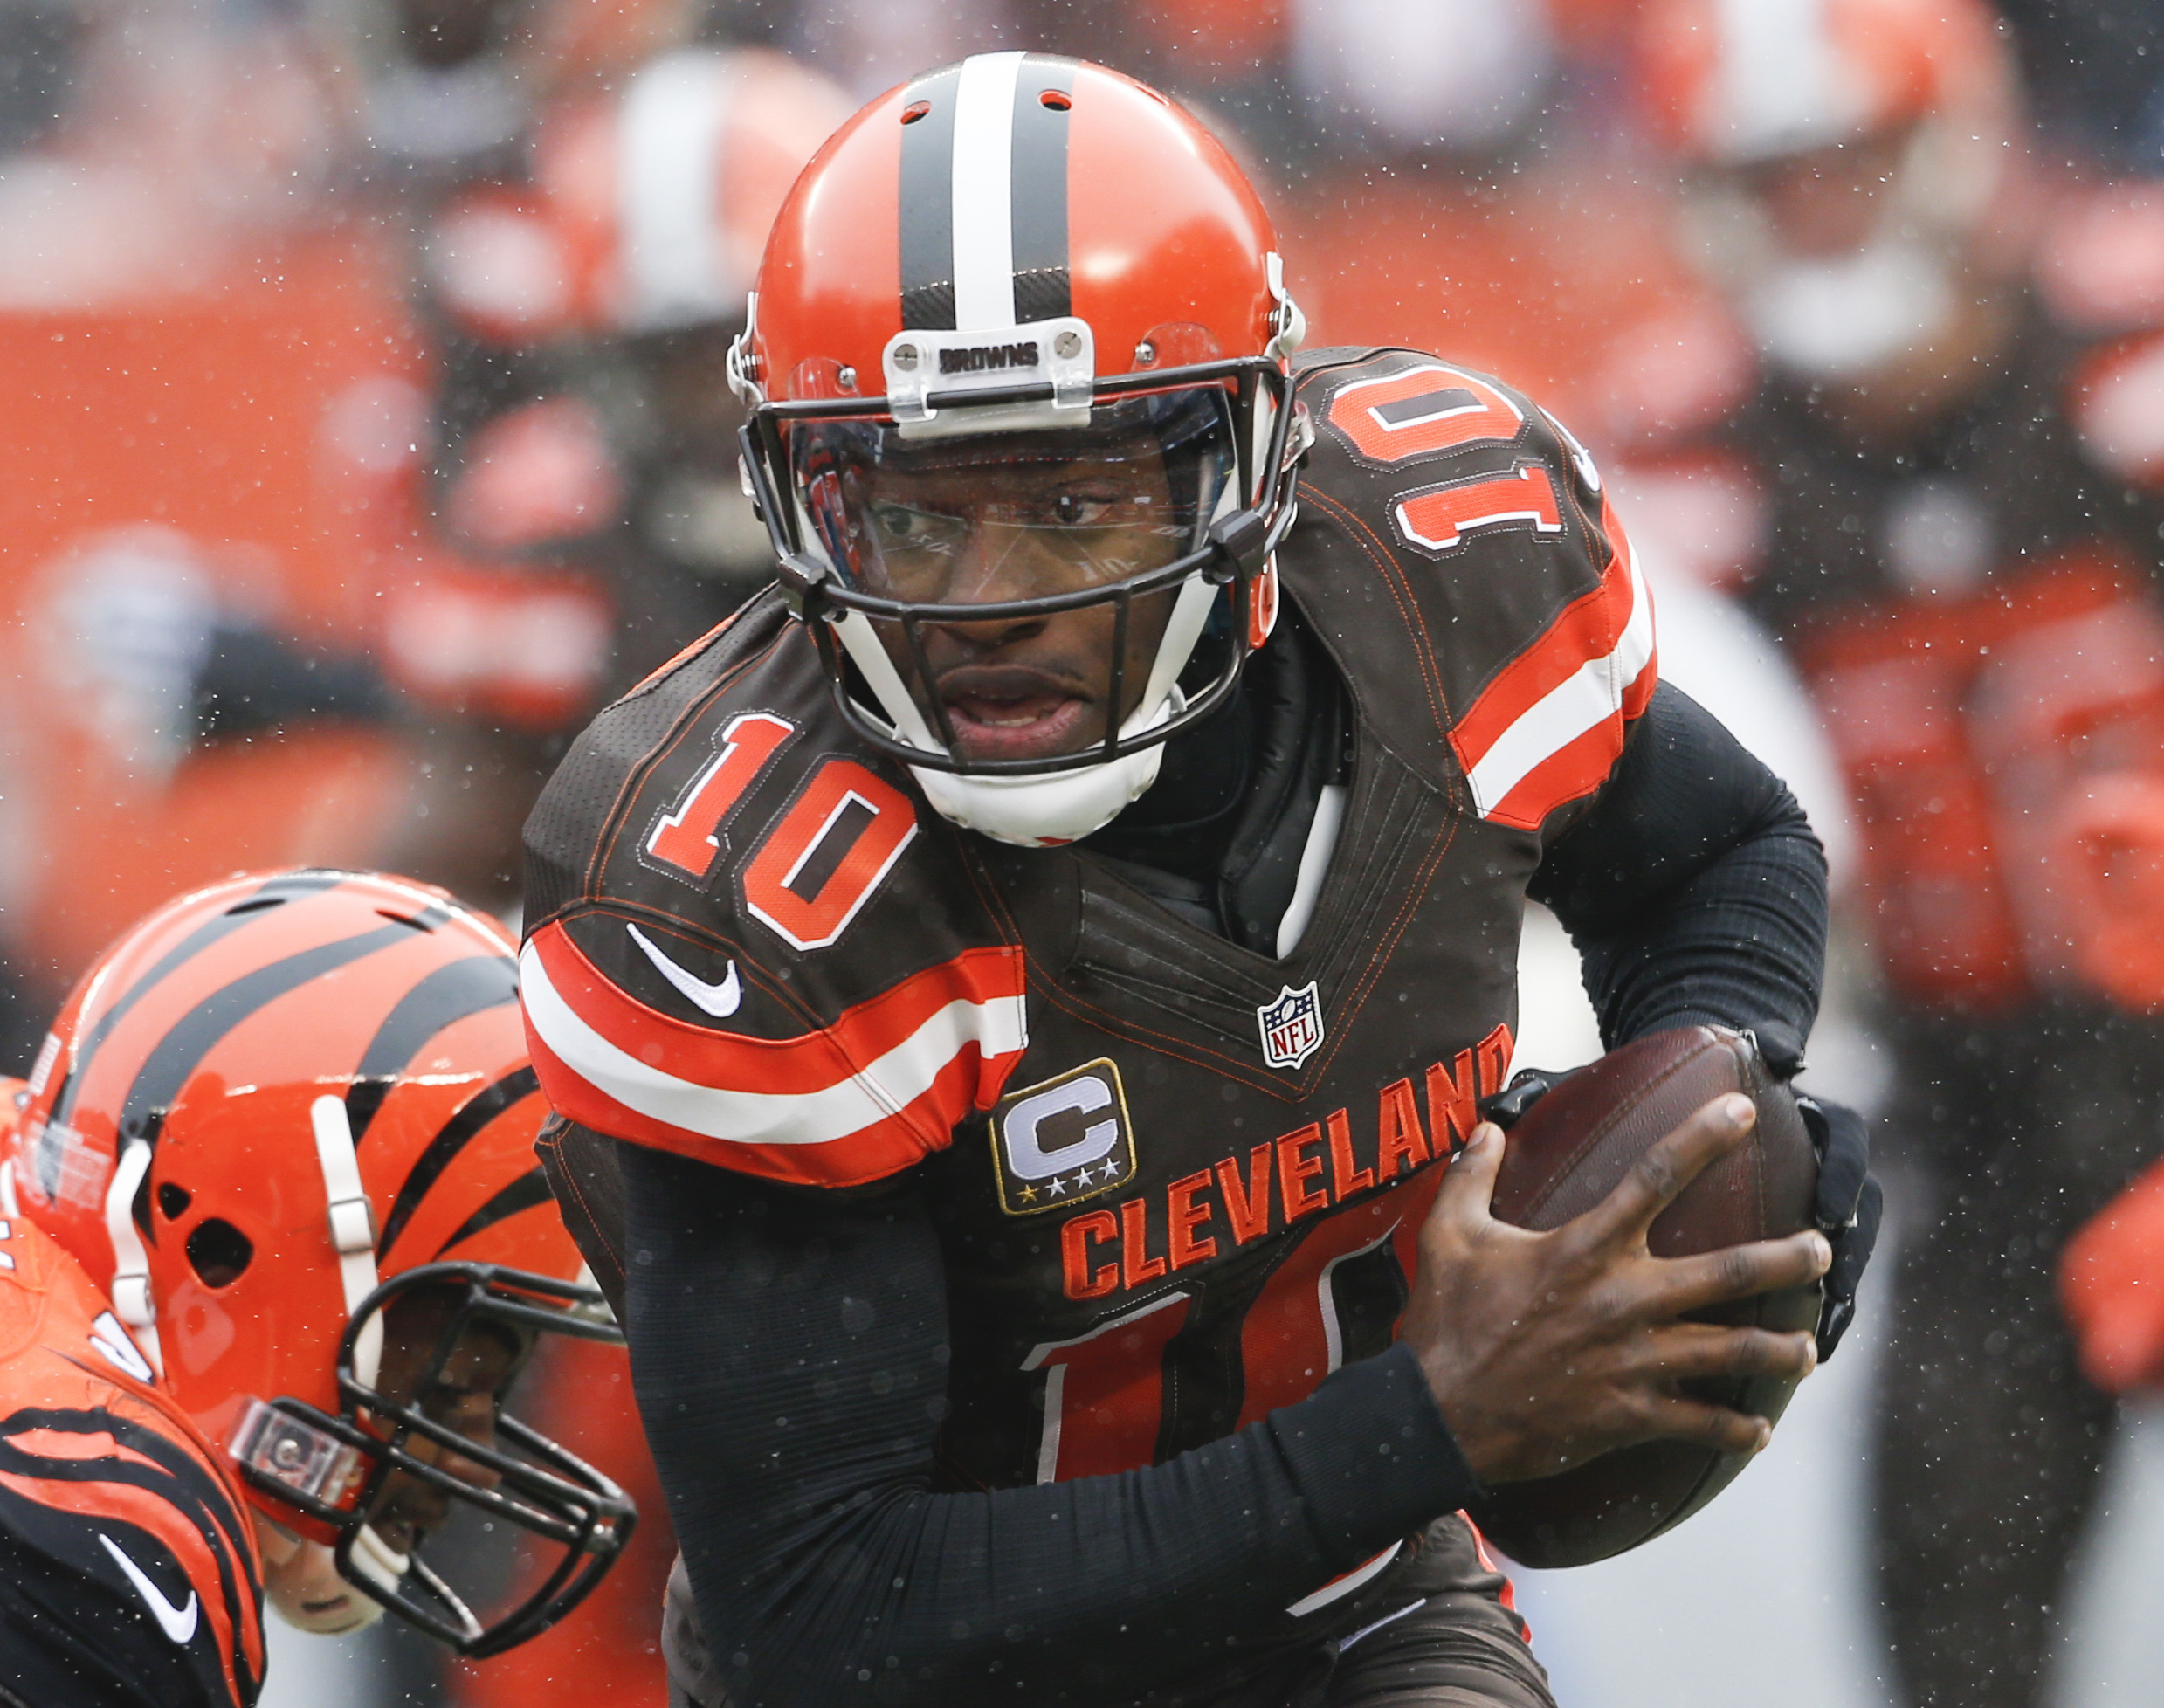 FILE - In this Dec. 11, 2016, file photo, Cleveland Browns quarterback Robert Griffin III runs in the first half of an NFL football game against the Cincinnati Bengals, in Cleveland. Browns coach Hue Jackson said Griffin III needs to be better this week i